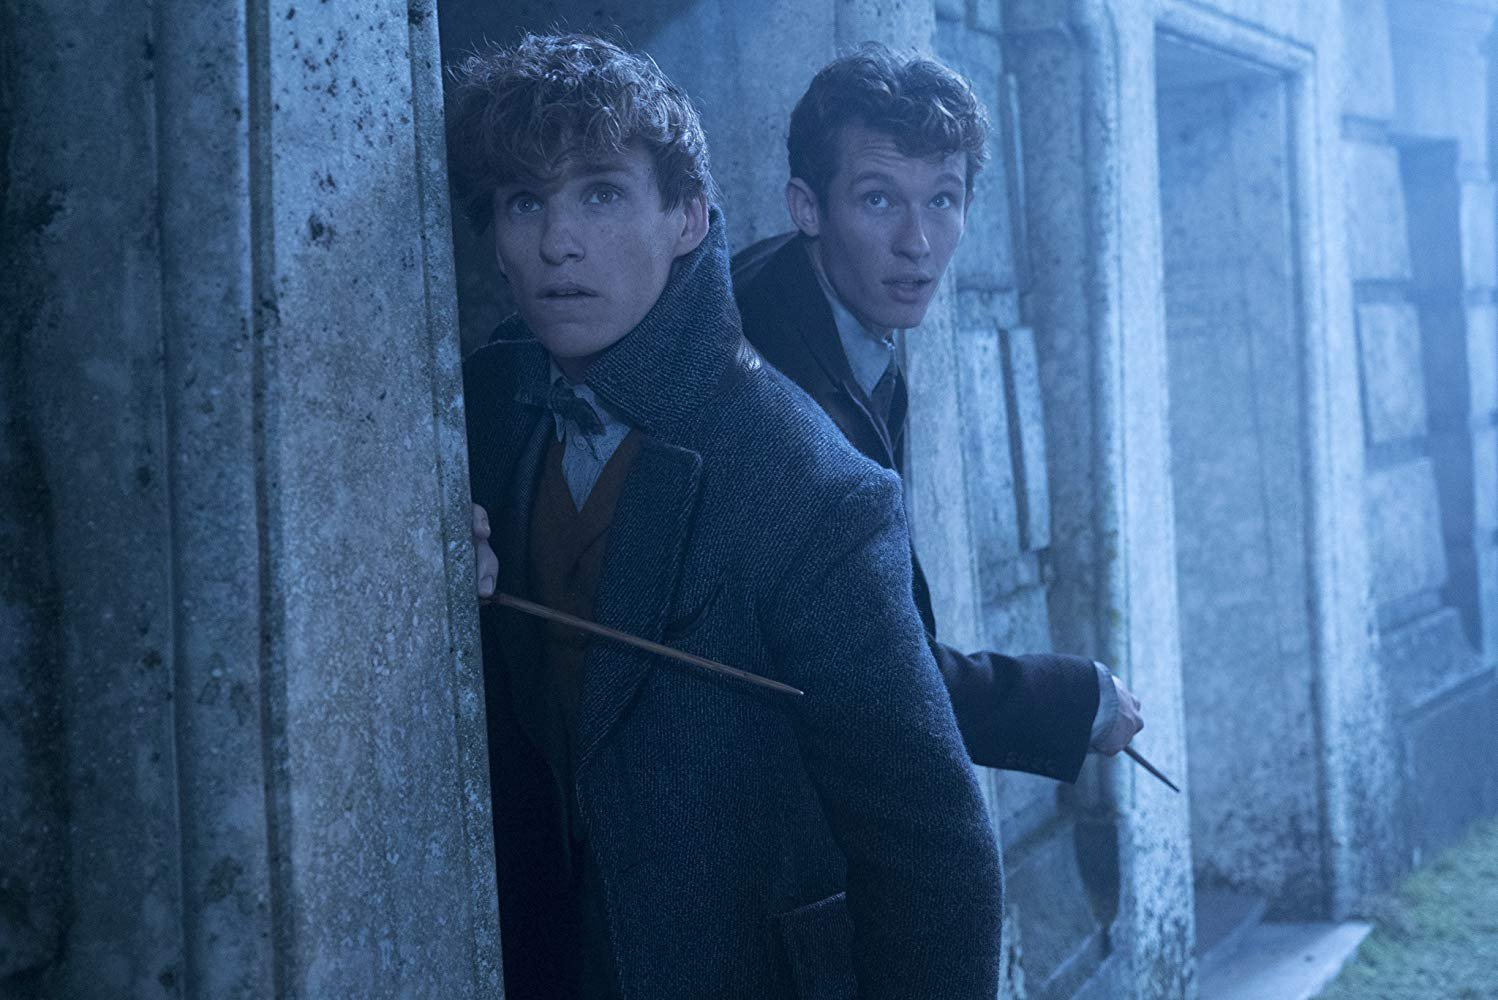 Fantastic Beasts 3 facing major delays as production is pushed back to late autumn